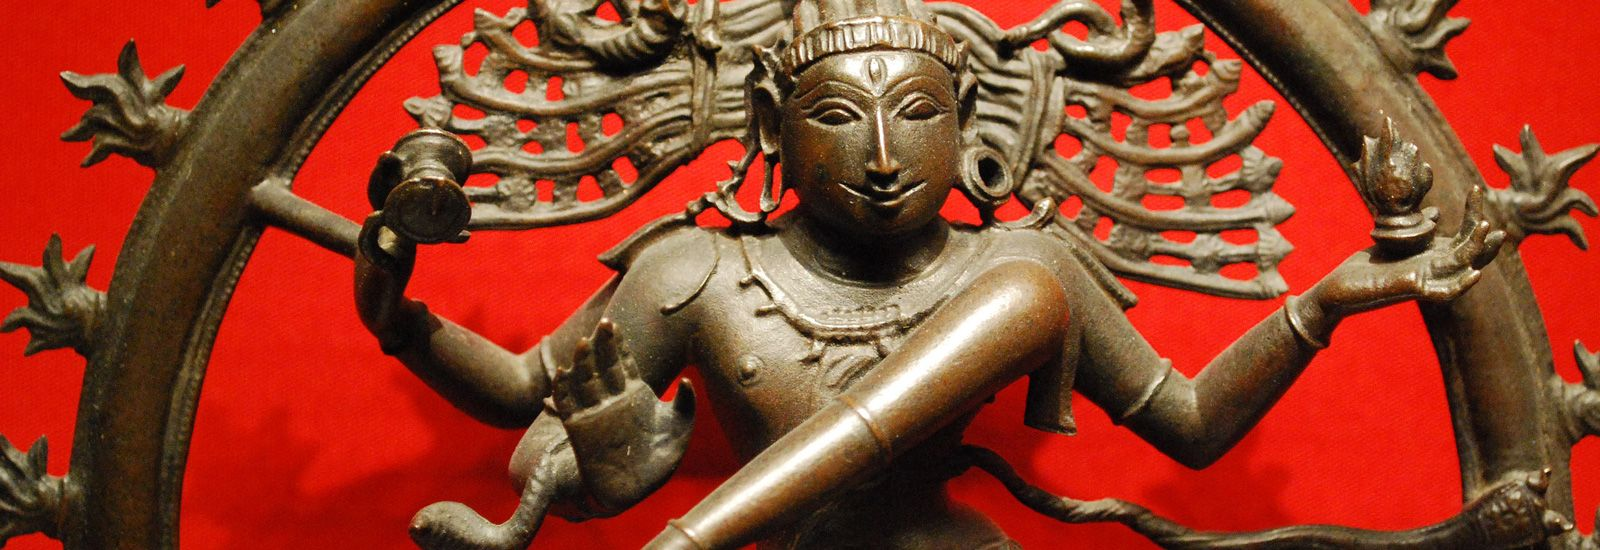 Detail of a statue of Shiva as Nataraja, Lord of the Dance, in the Ashmolean Museum